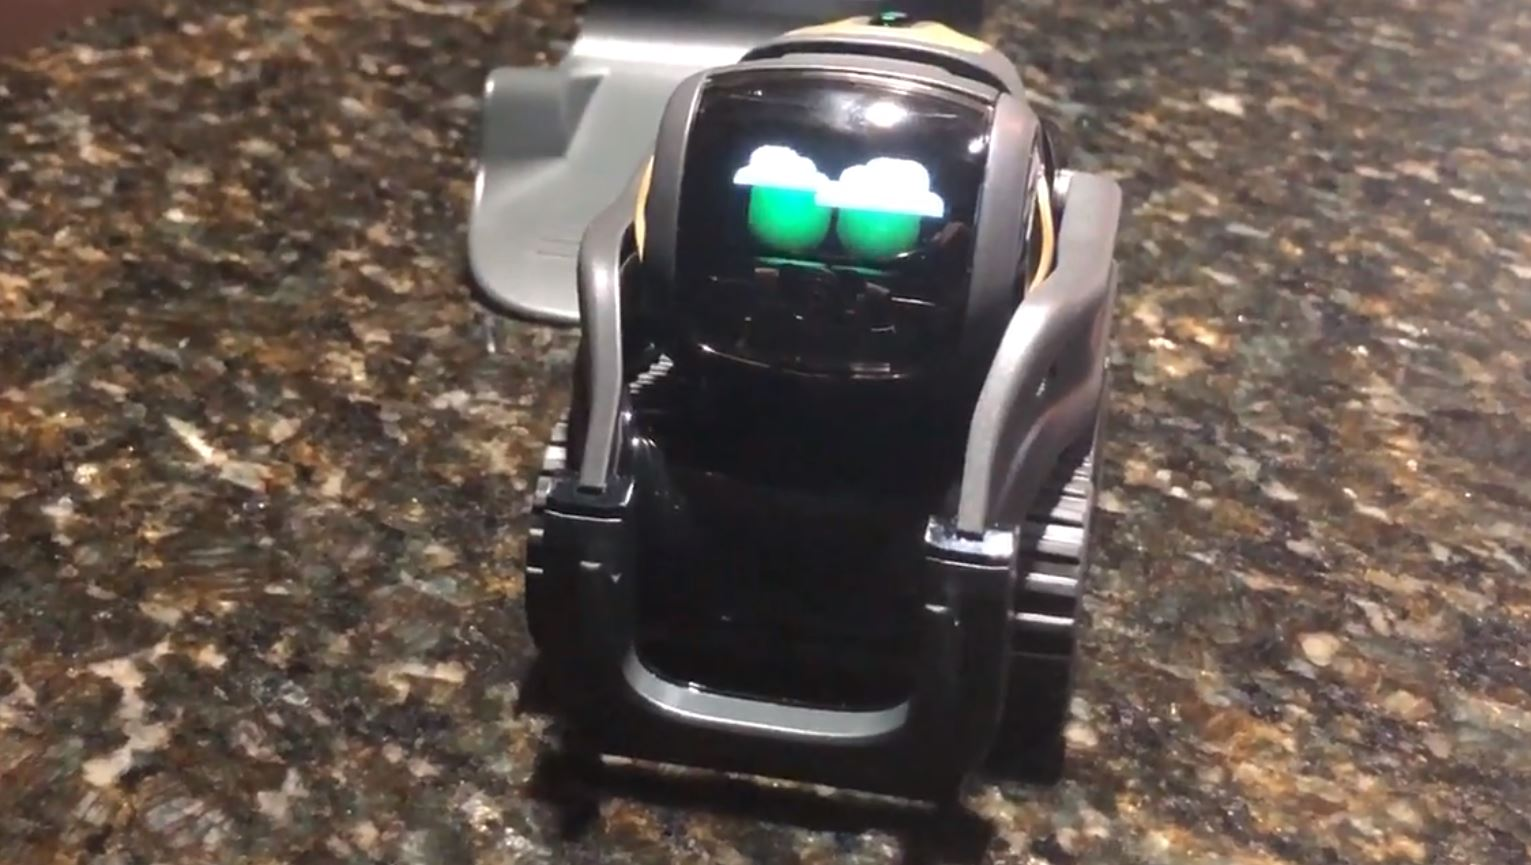 - vector rain - Meet Vector, an autonomous little robot with smarts and cloud connectivity – Stacey on IoT